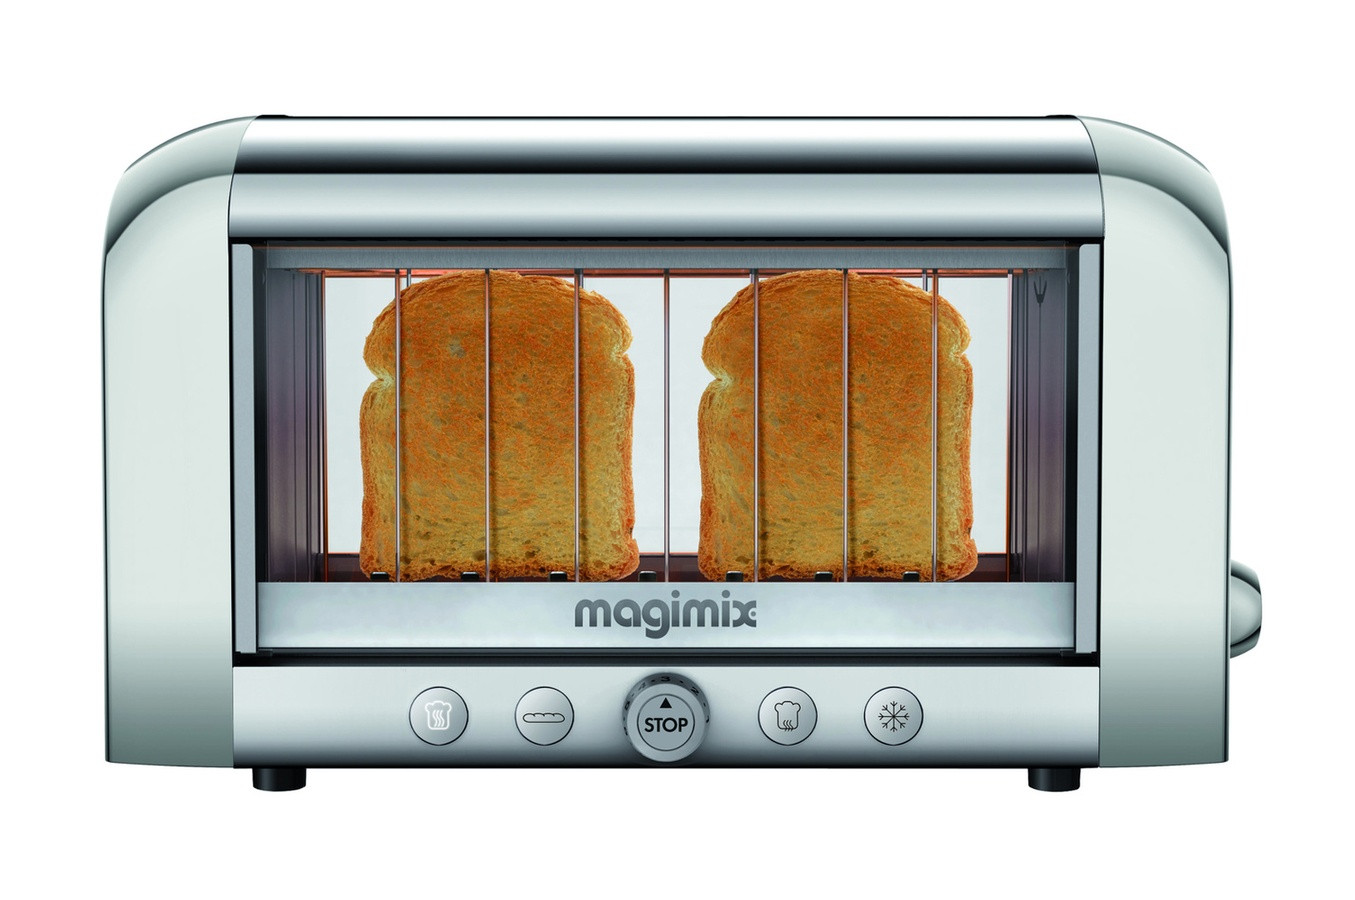 MAGIMIX GRILLE PAIN TOAST.VISION.4TR.XL.1450W.BRILL.